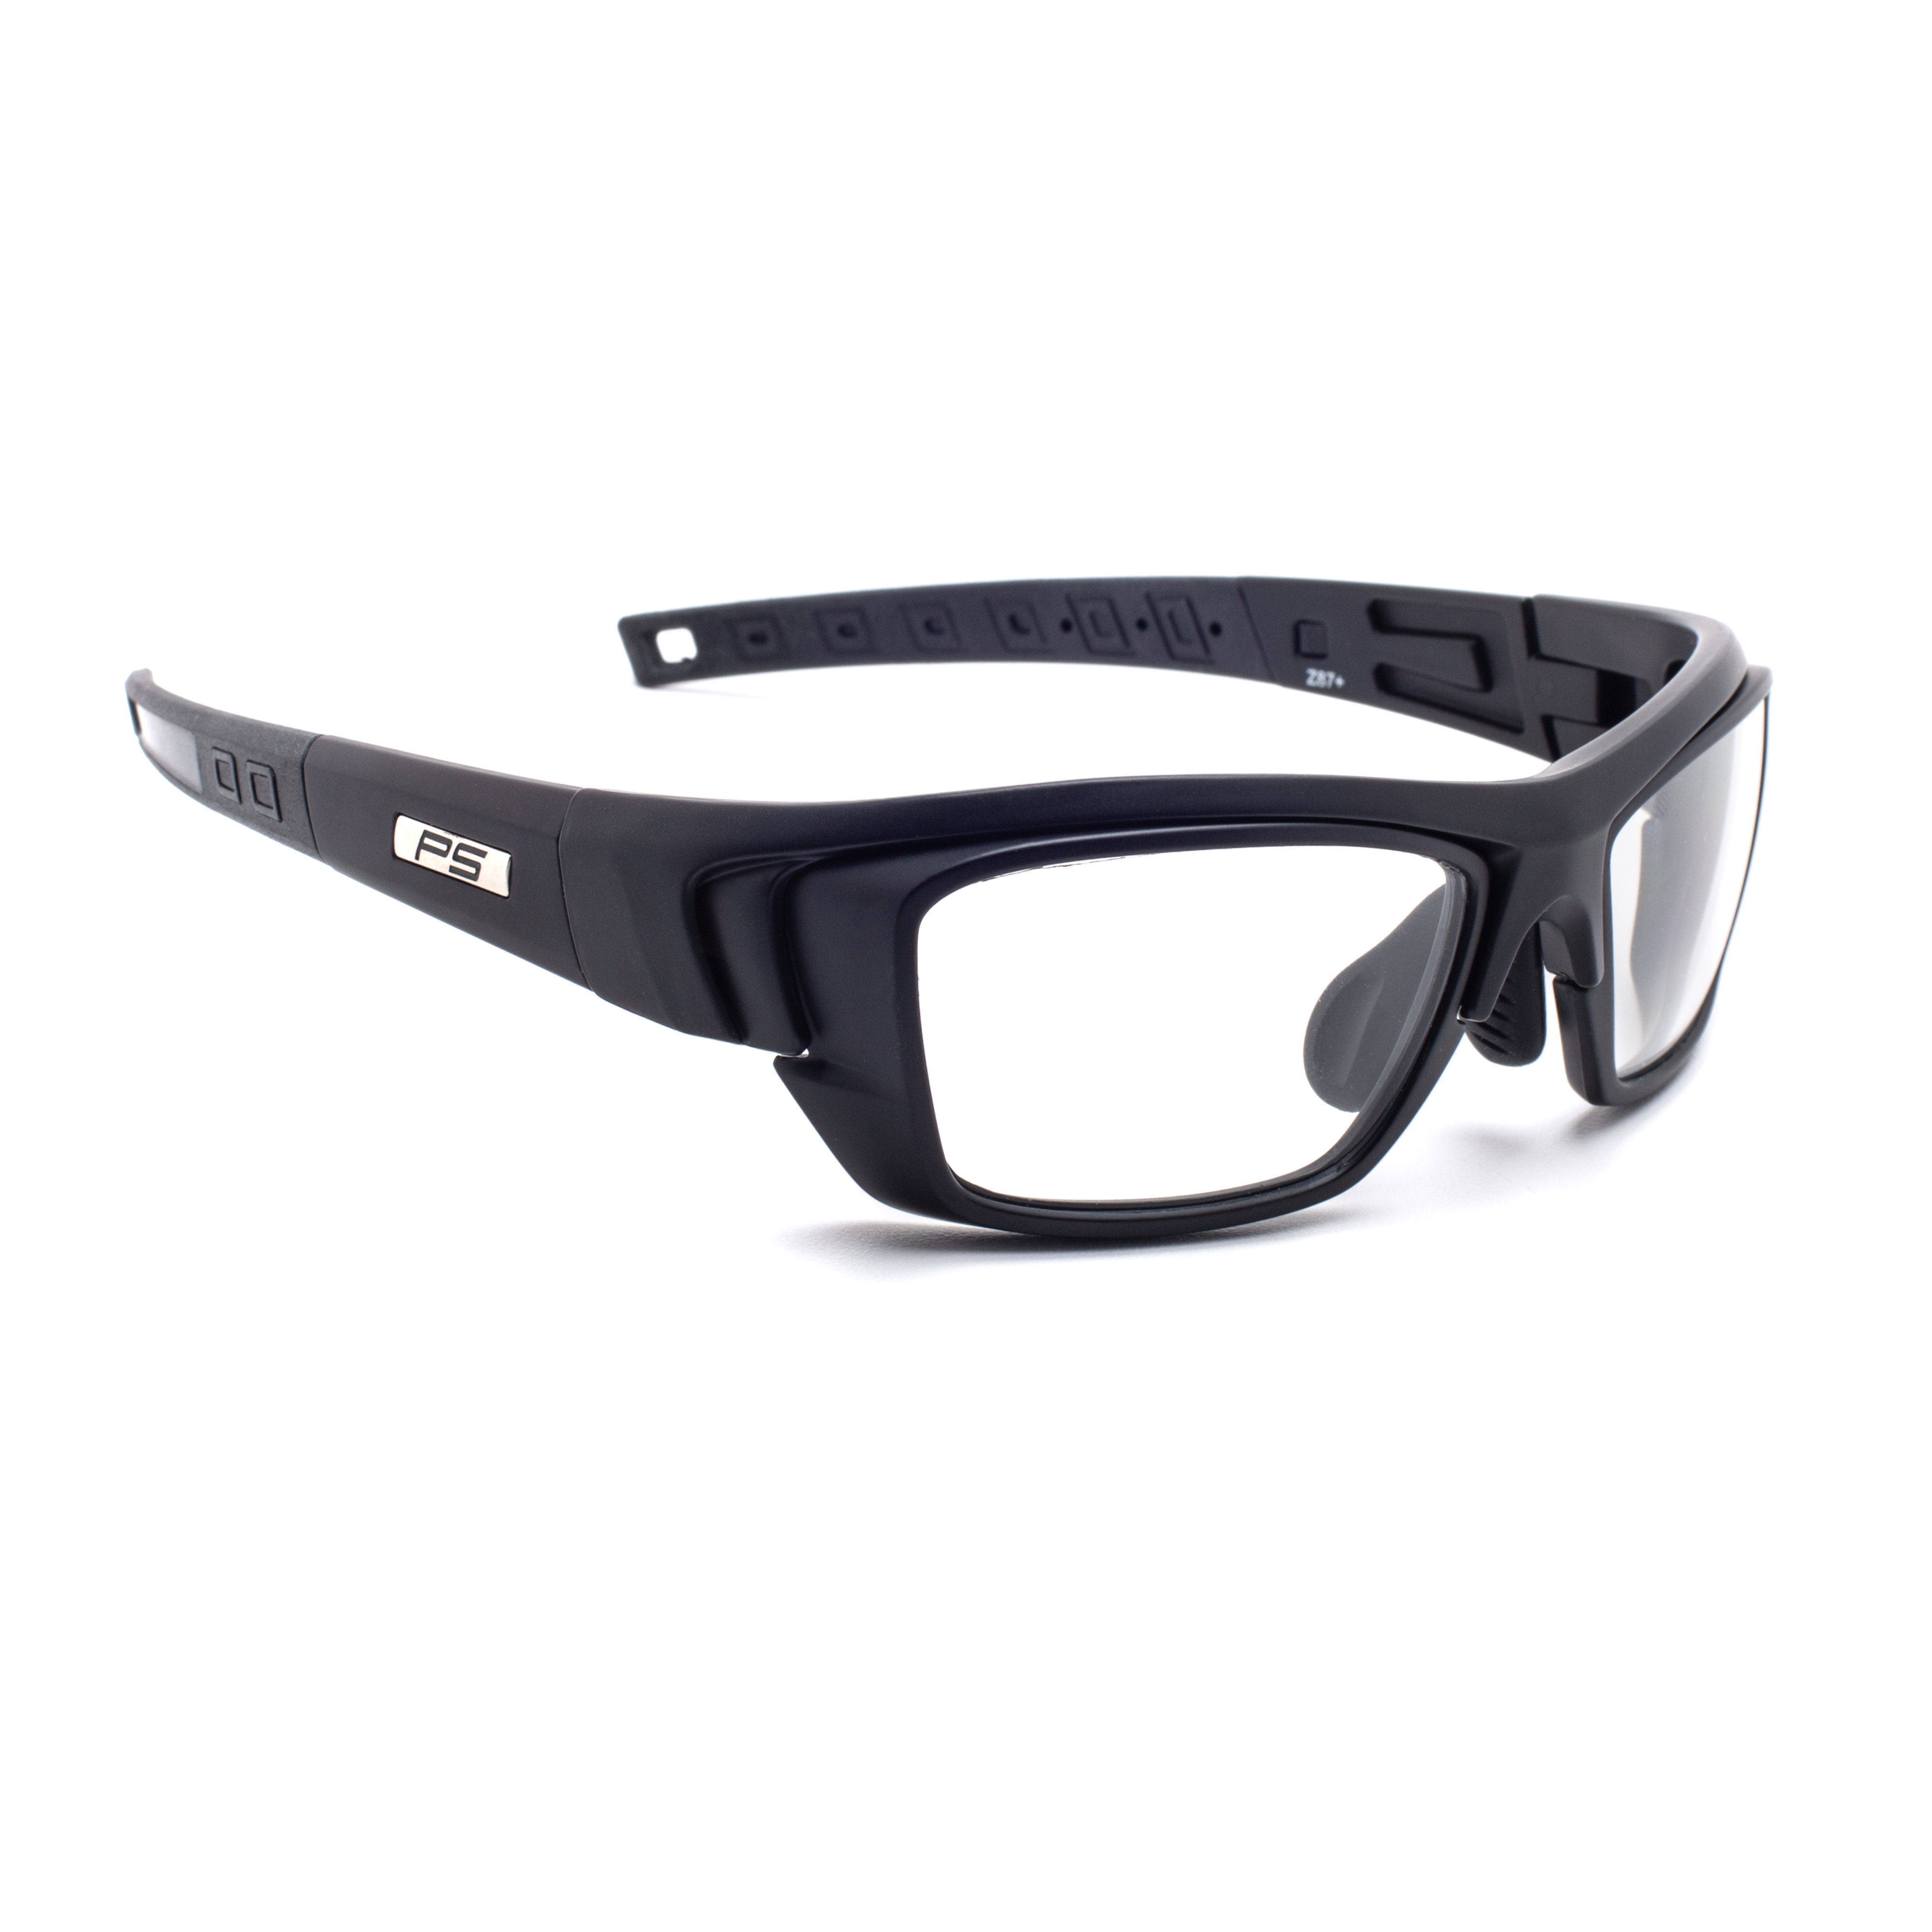 Top 6 Best Prescription Safety Glasses Reviewed on Style